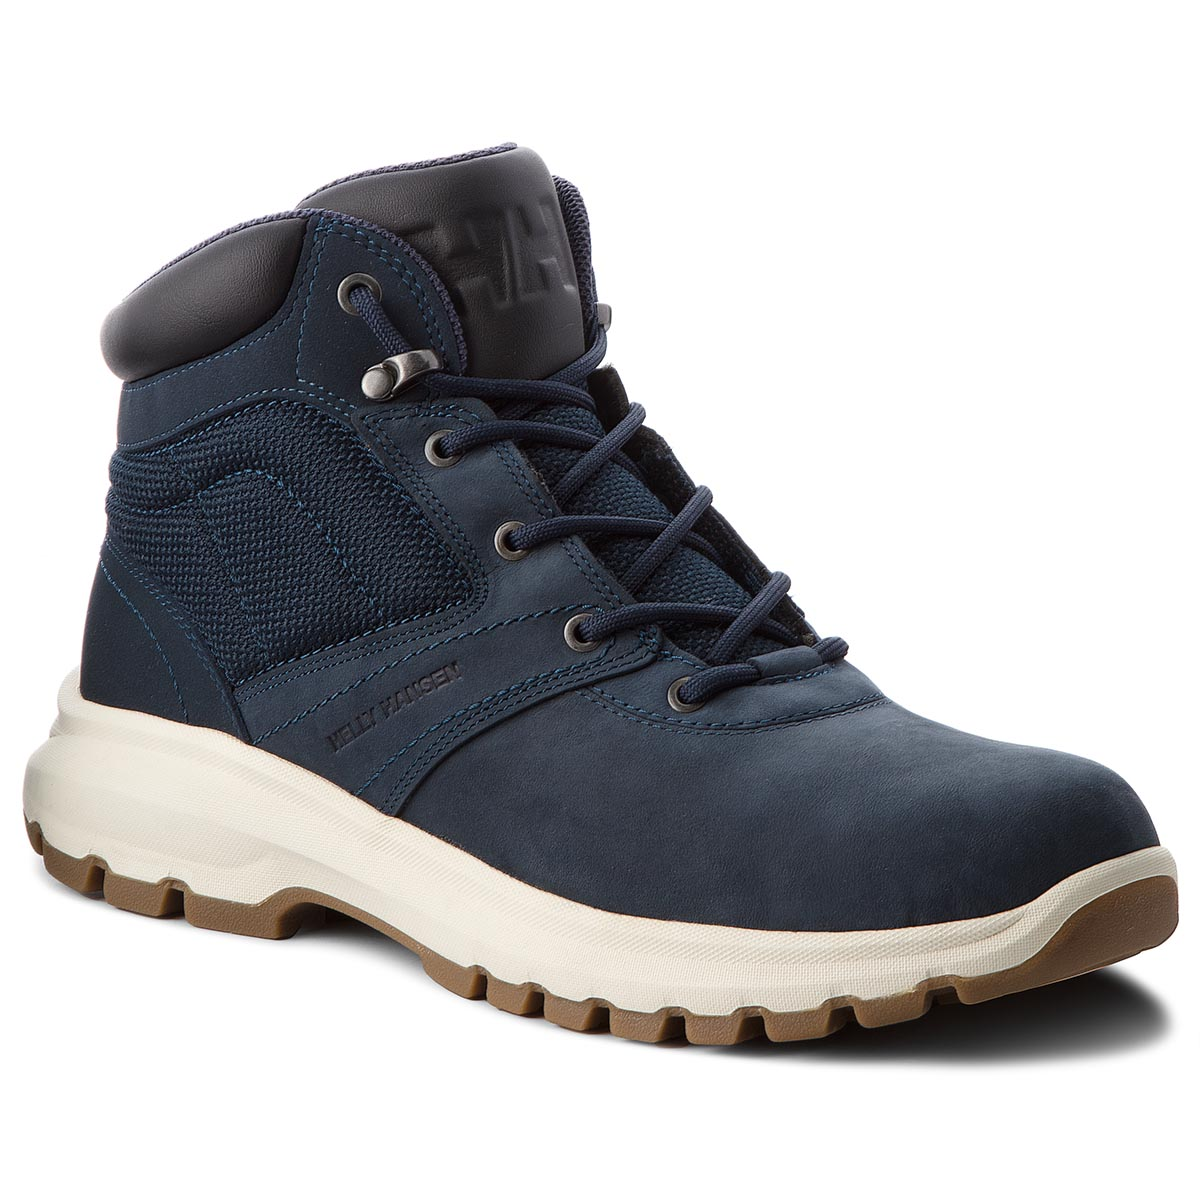 Trekkings Helly Hansen - Montreal V2 114-25.598 Navy/Jet Black/Angora imagine epantofi.ro 2021